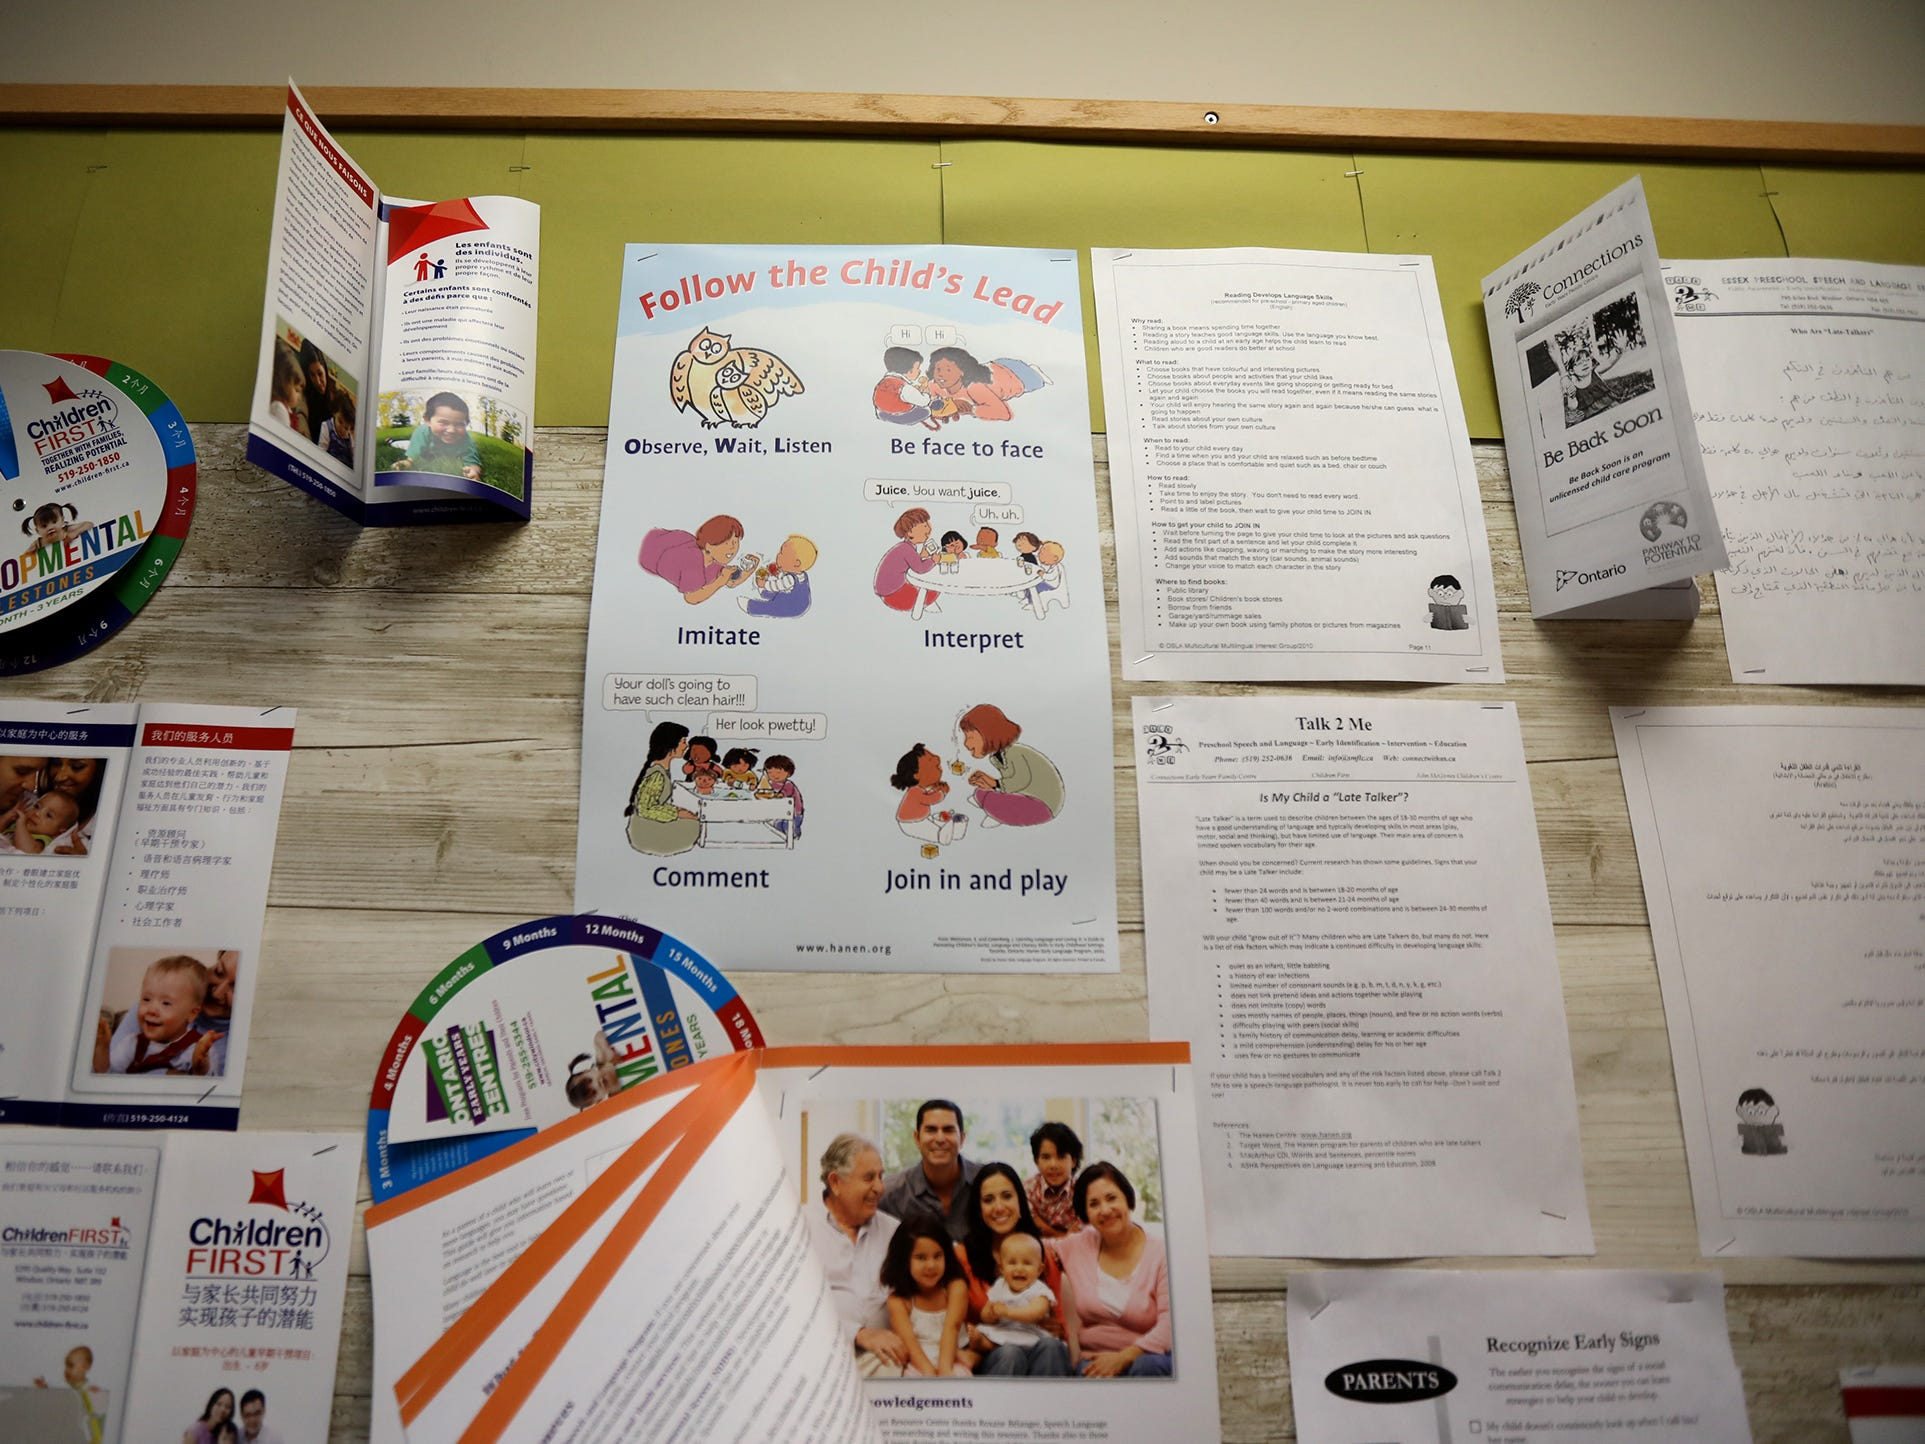 Glengarry EarlyON Child and Family Centre, in Windsor, Ontario, Canada has a wall informing parents about child development.